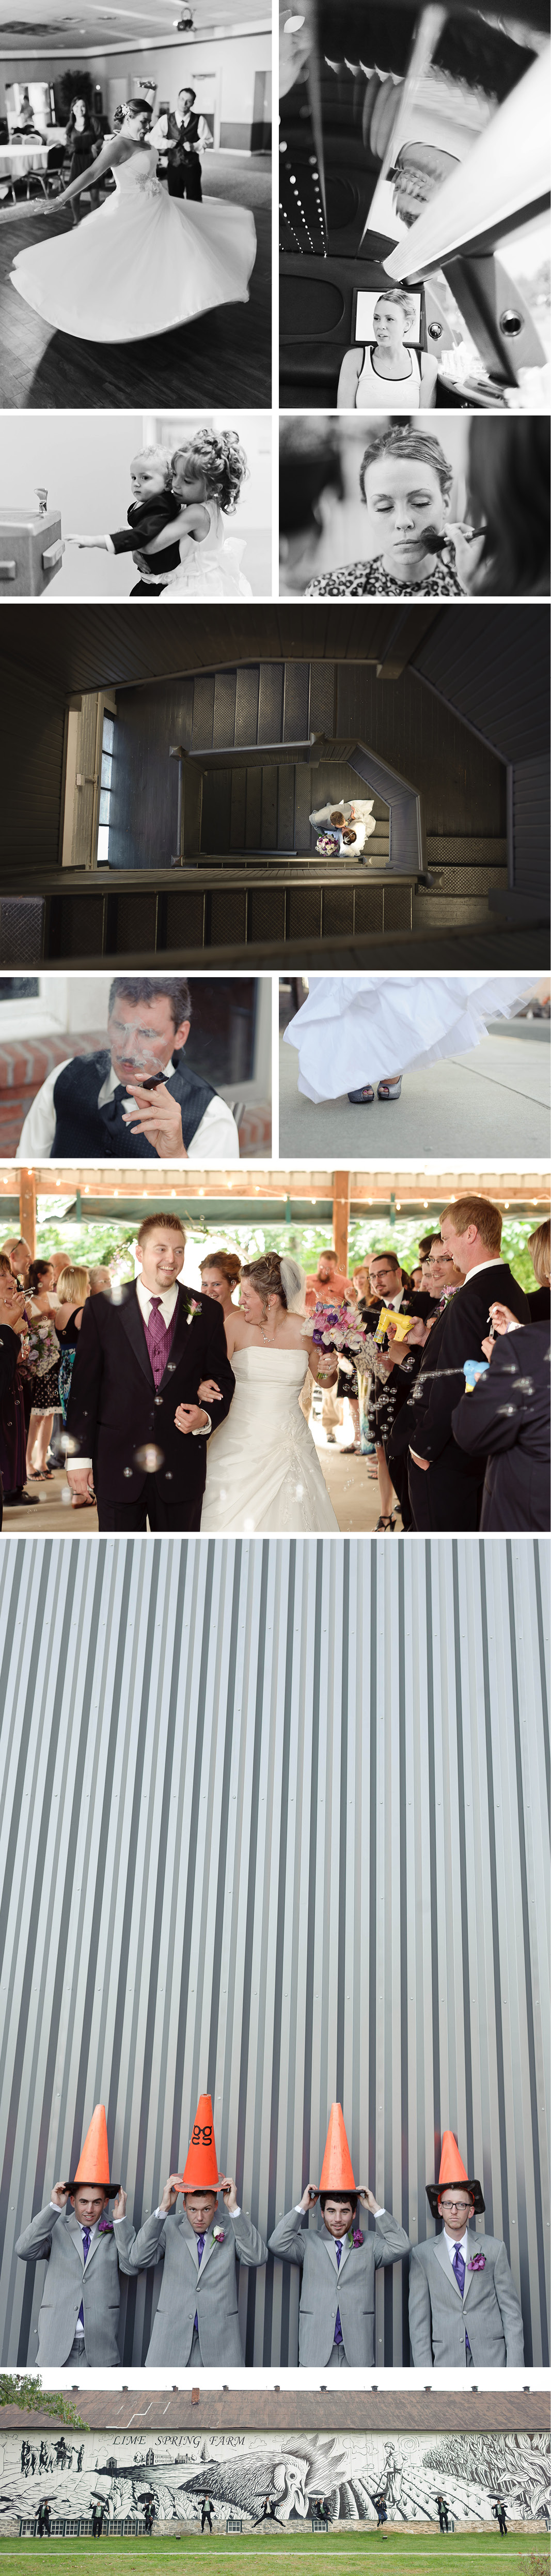 Wedding and portrait photography by Jeremy Bischoff Photography